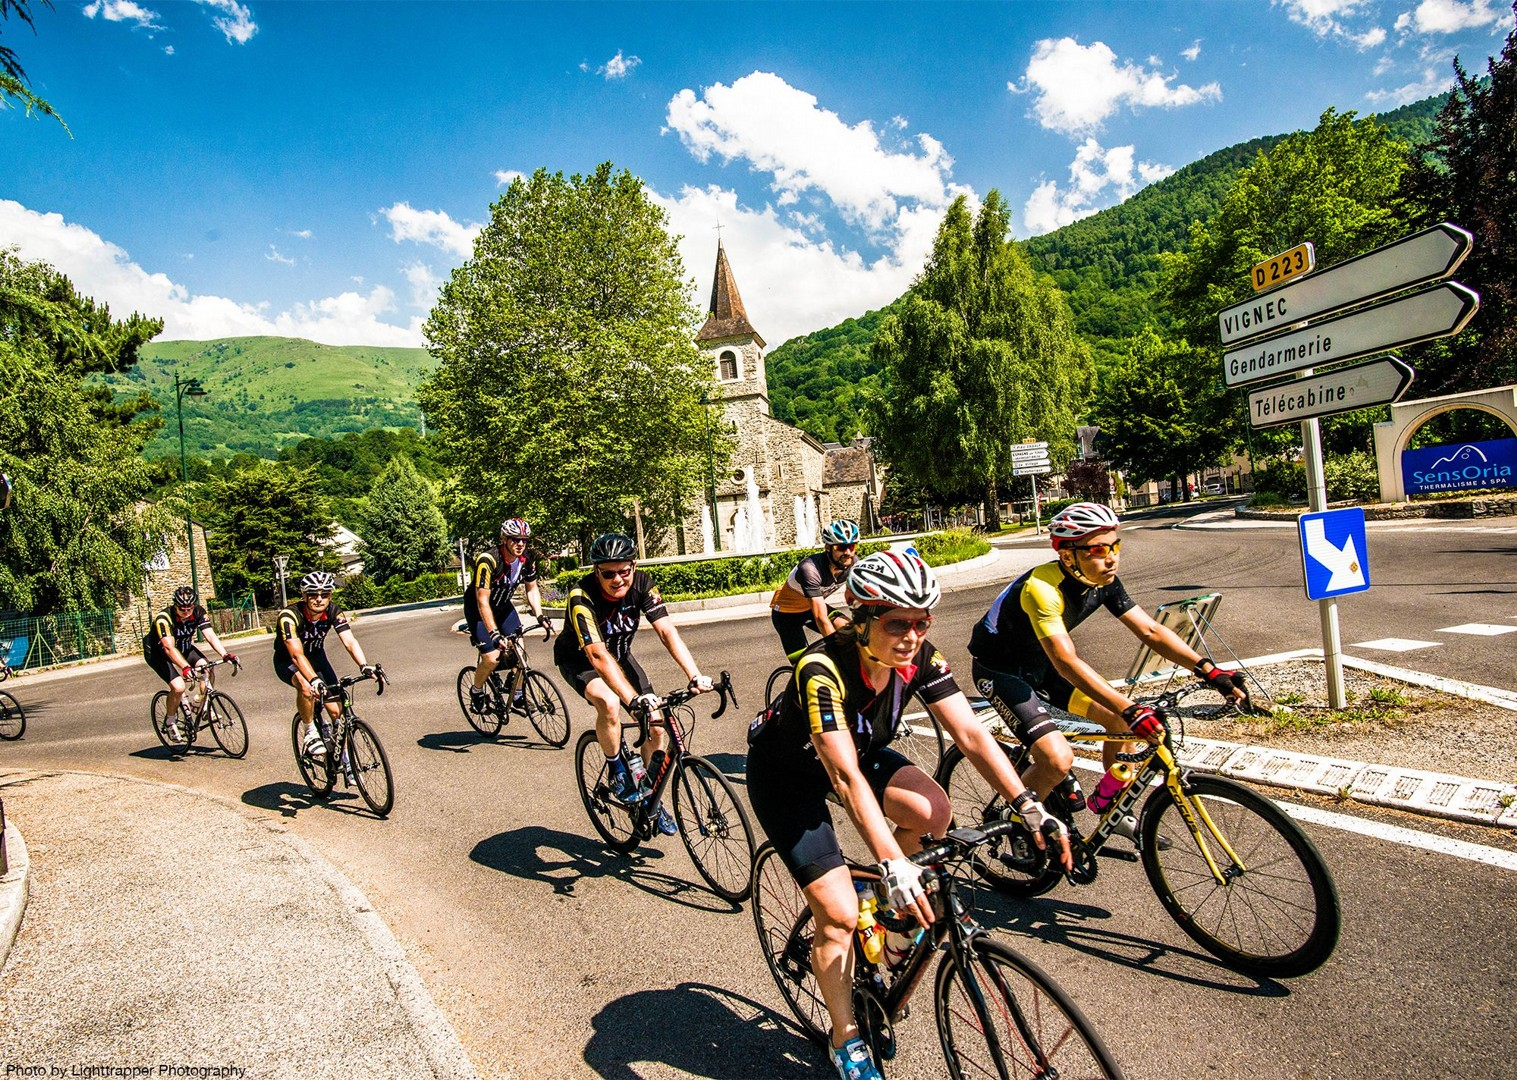 france-gendarmerie-vignec-village-cycling-holiday-with-saddle-skedaddle.jpg - France - Trans Pyrenees Challenge - Guided Road Cycling Holiday - Road Cycling